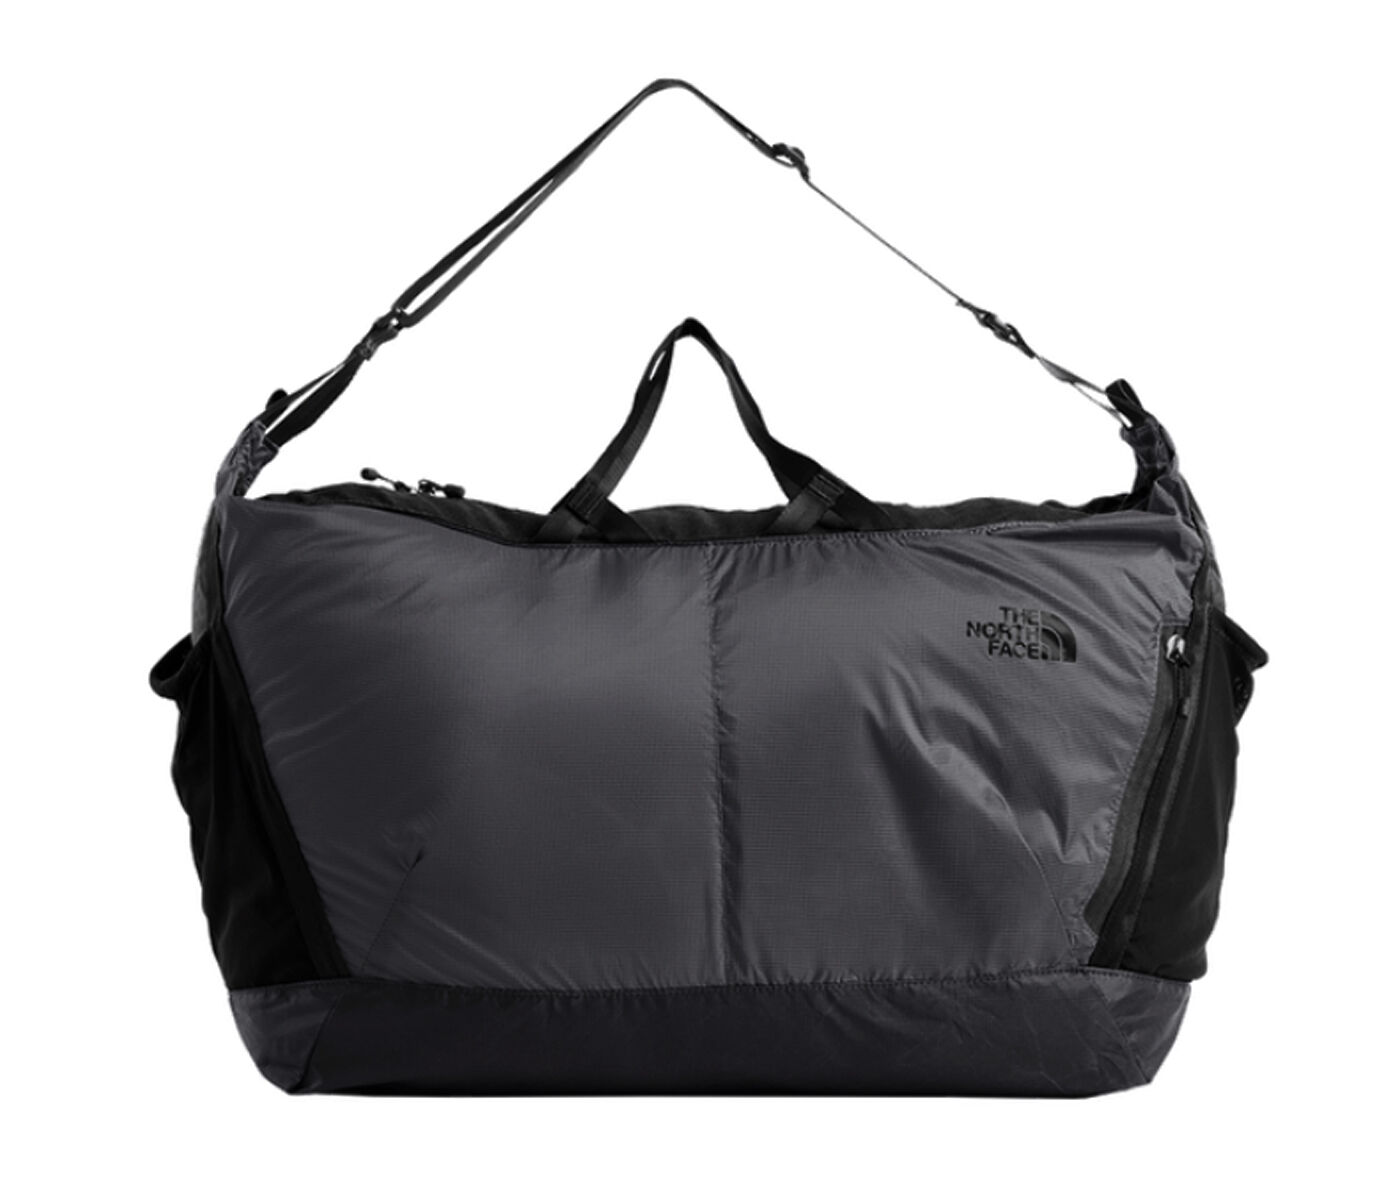 Mala Flyweight Duffel - The North Face